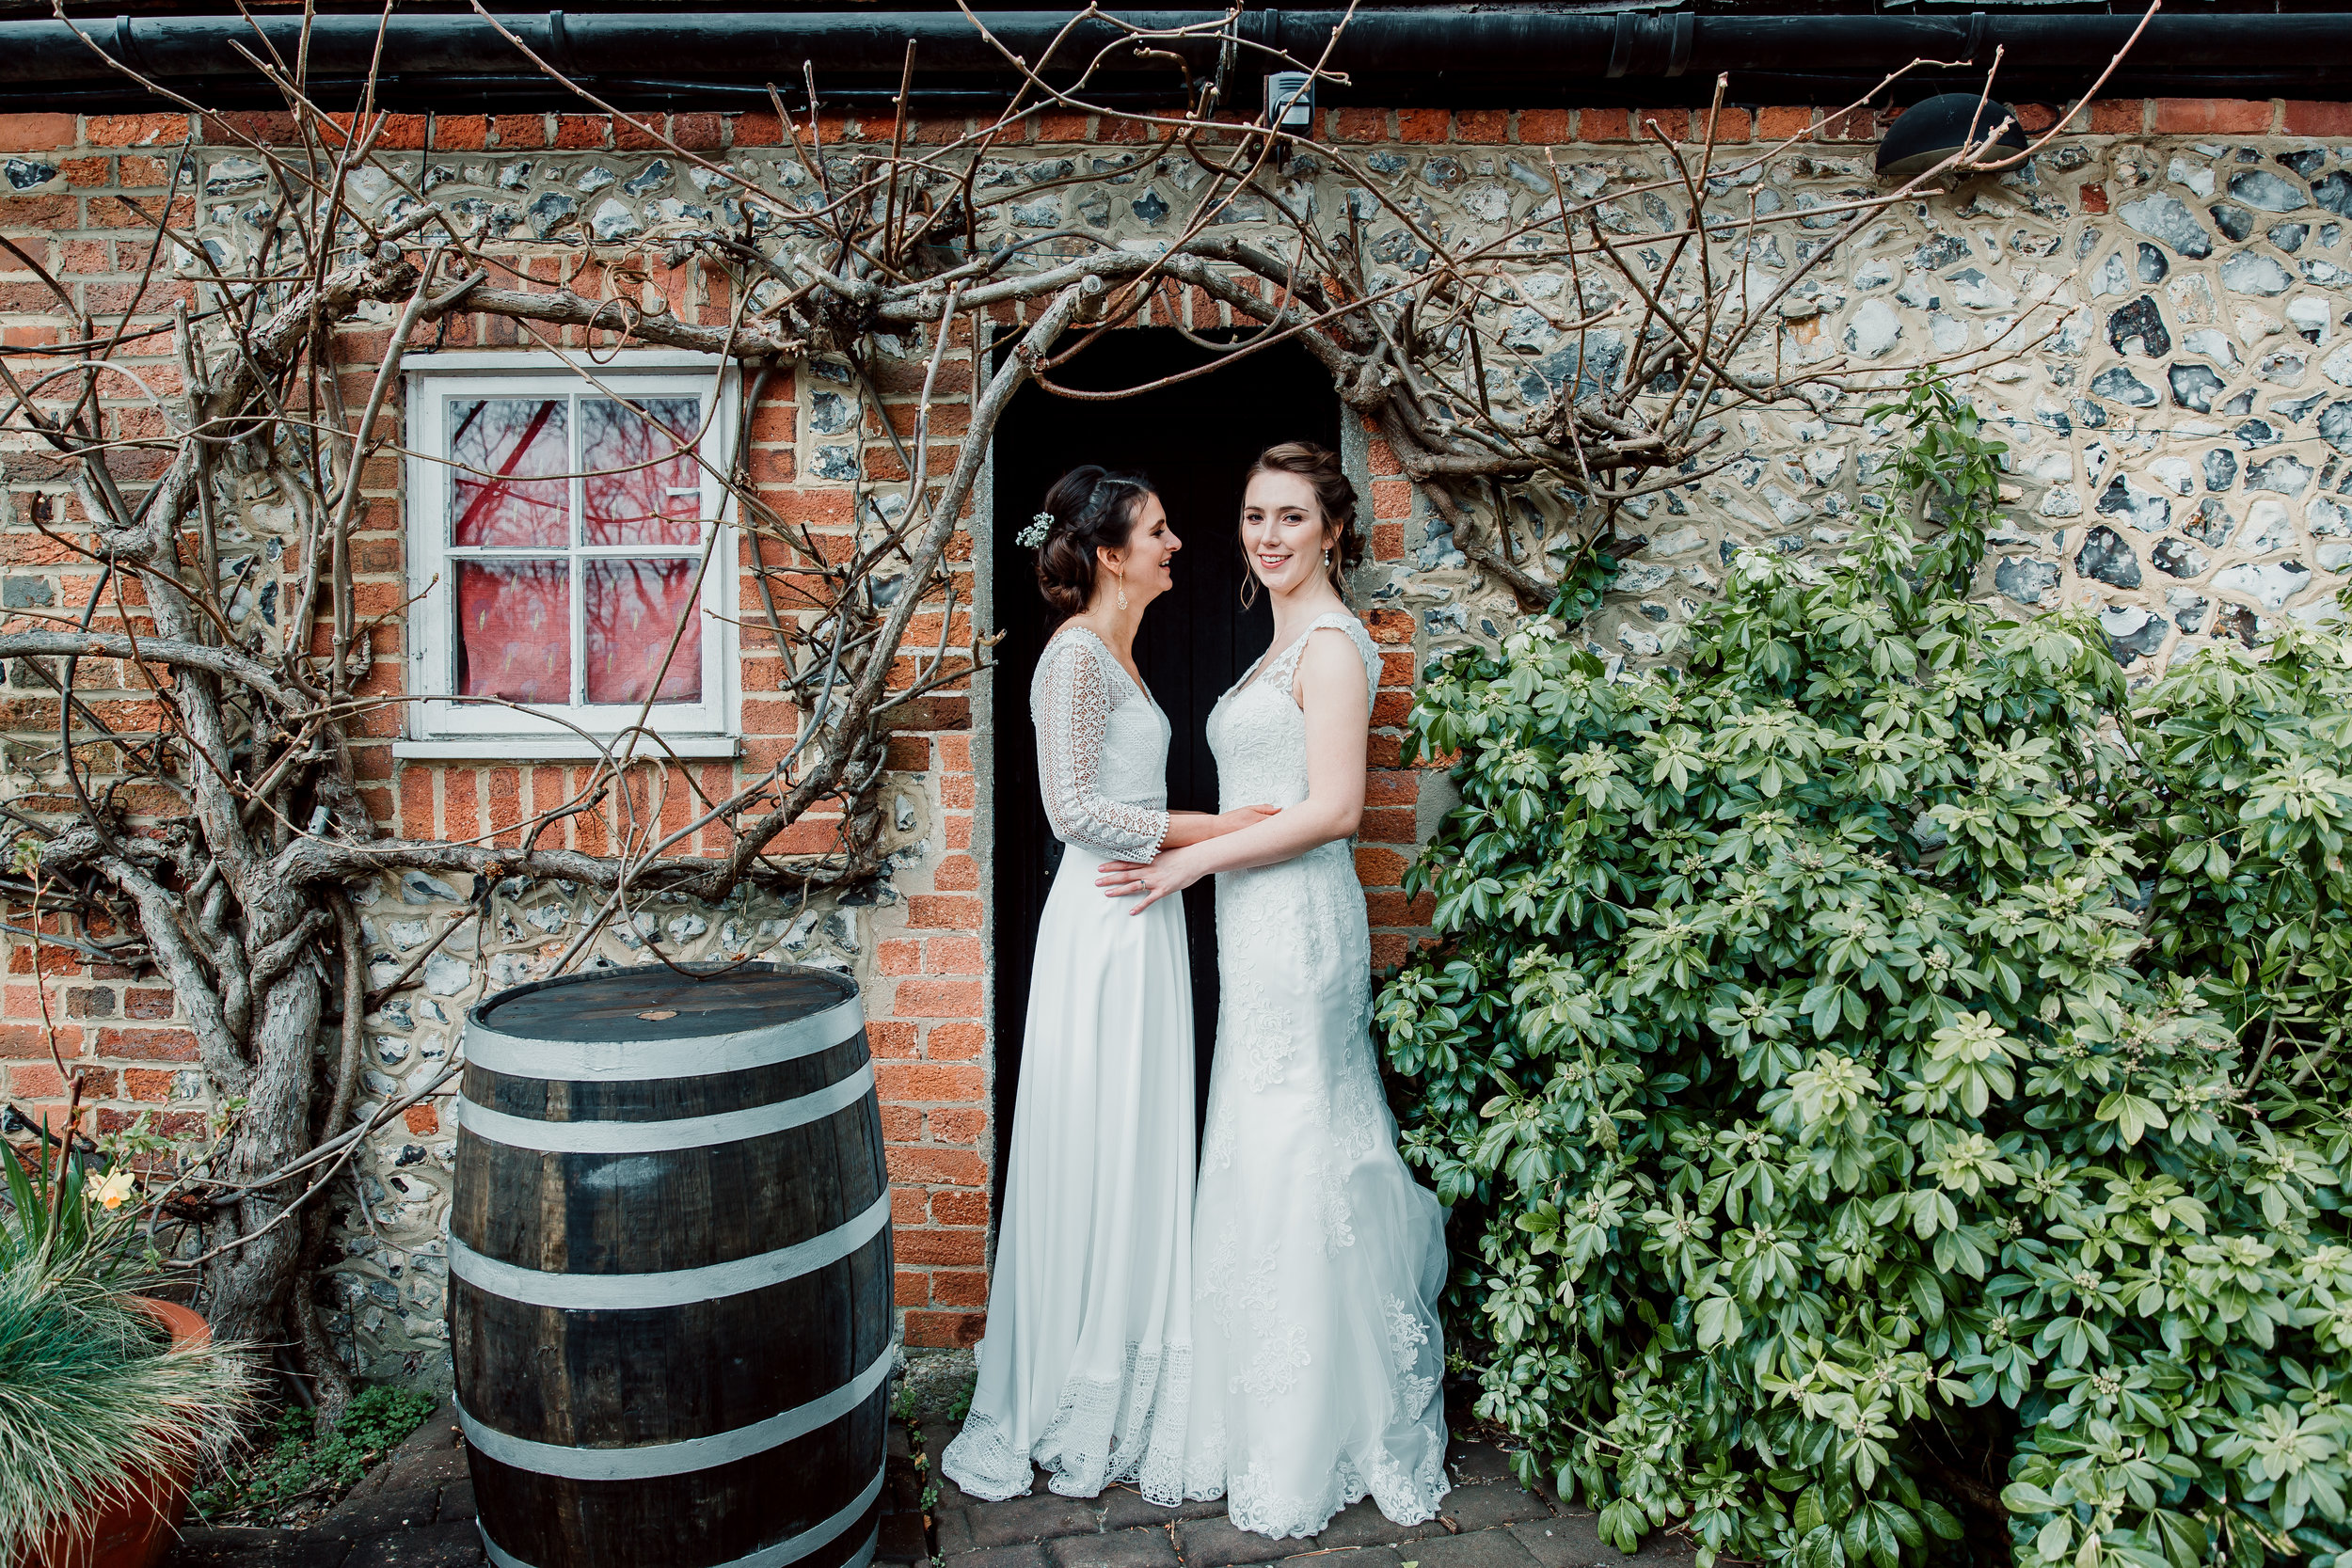 Vanessa & Hannah Wedding Photography Review